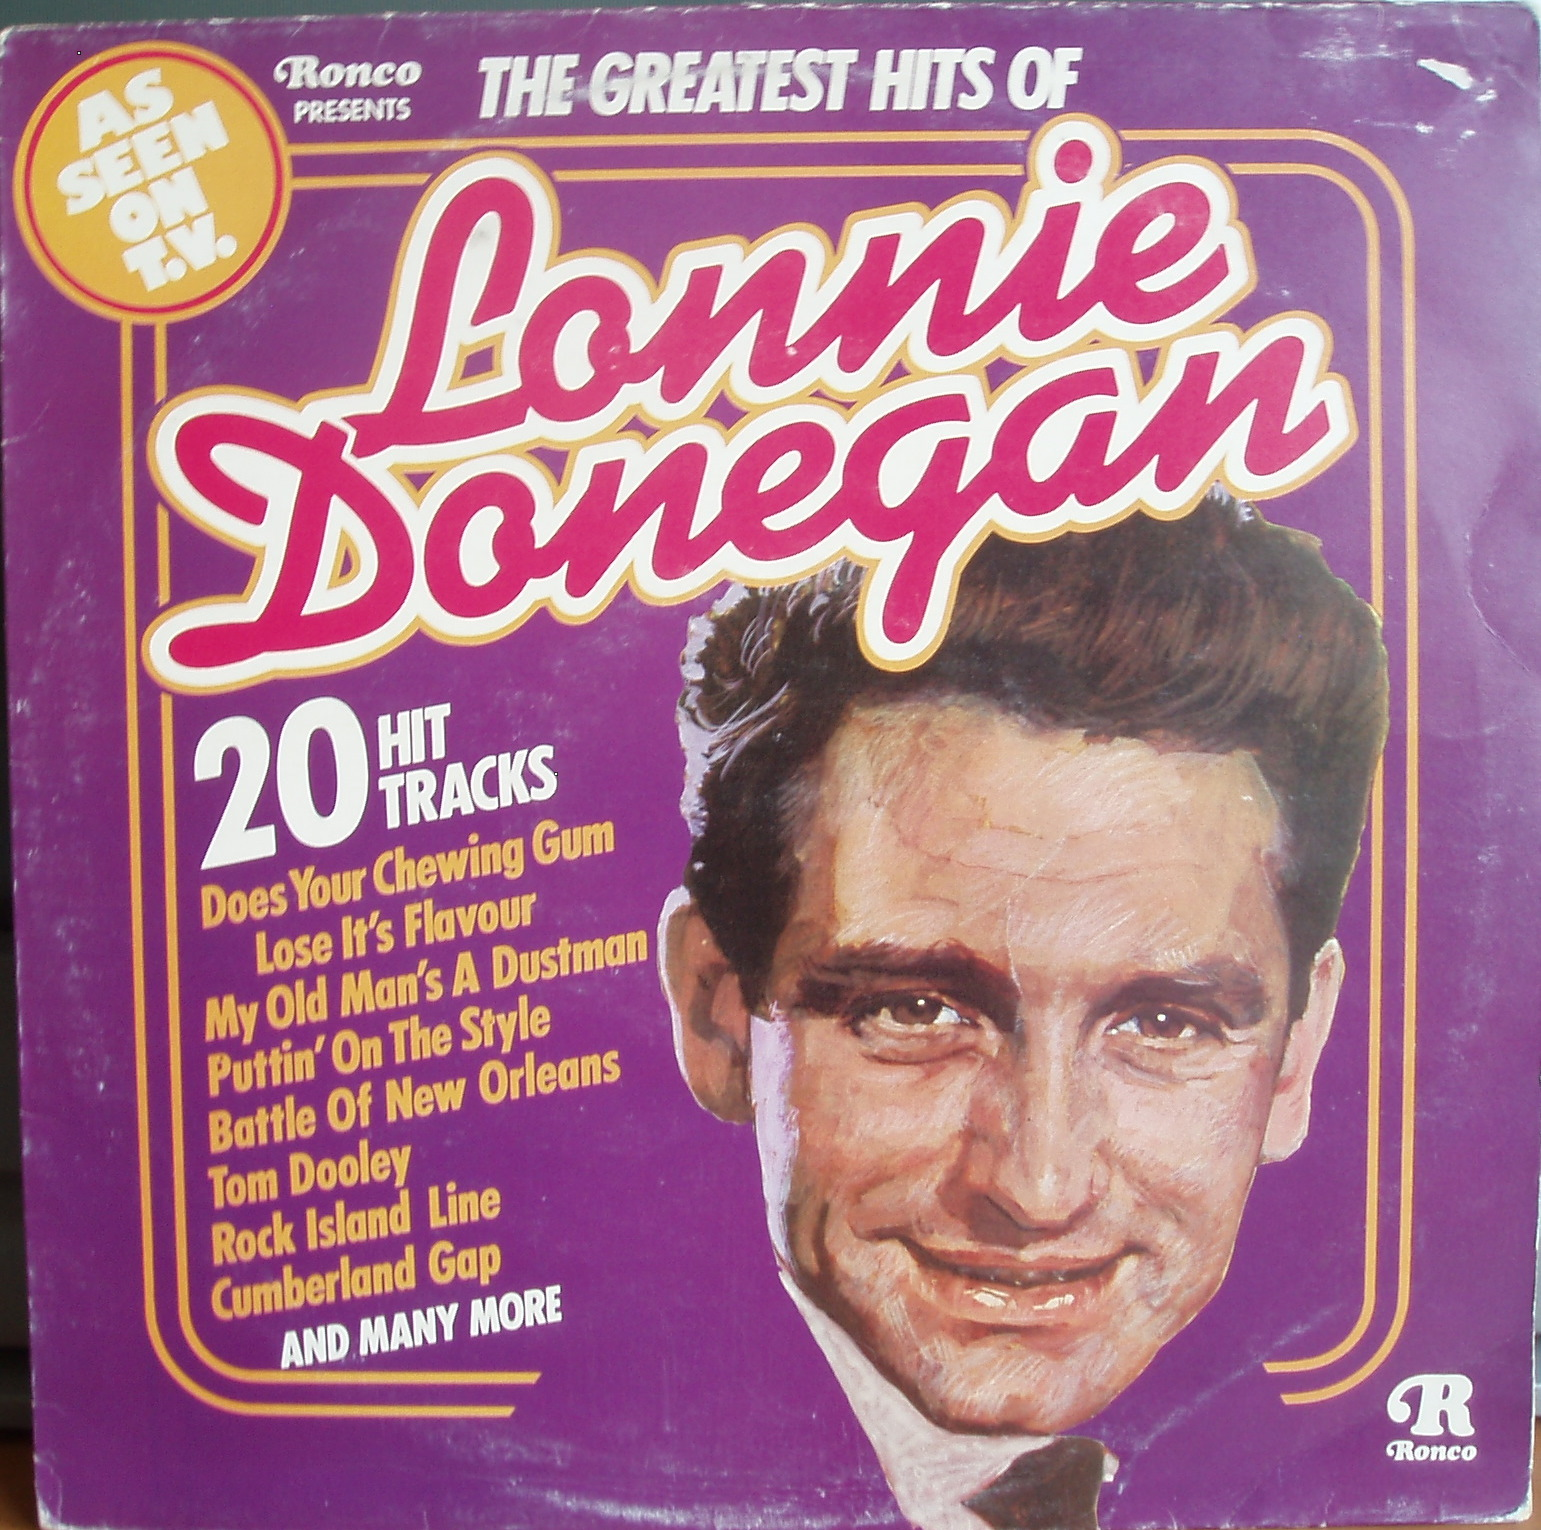 The Greatest His Of Lonnie Donegan